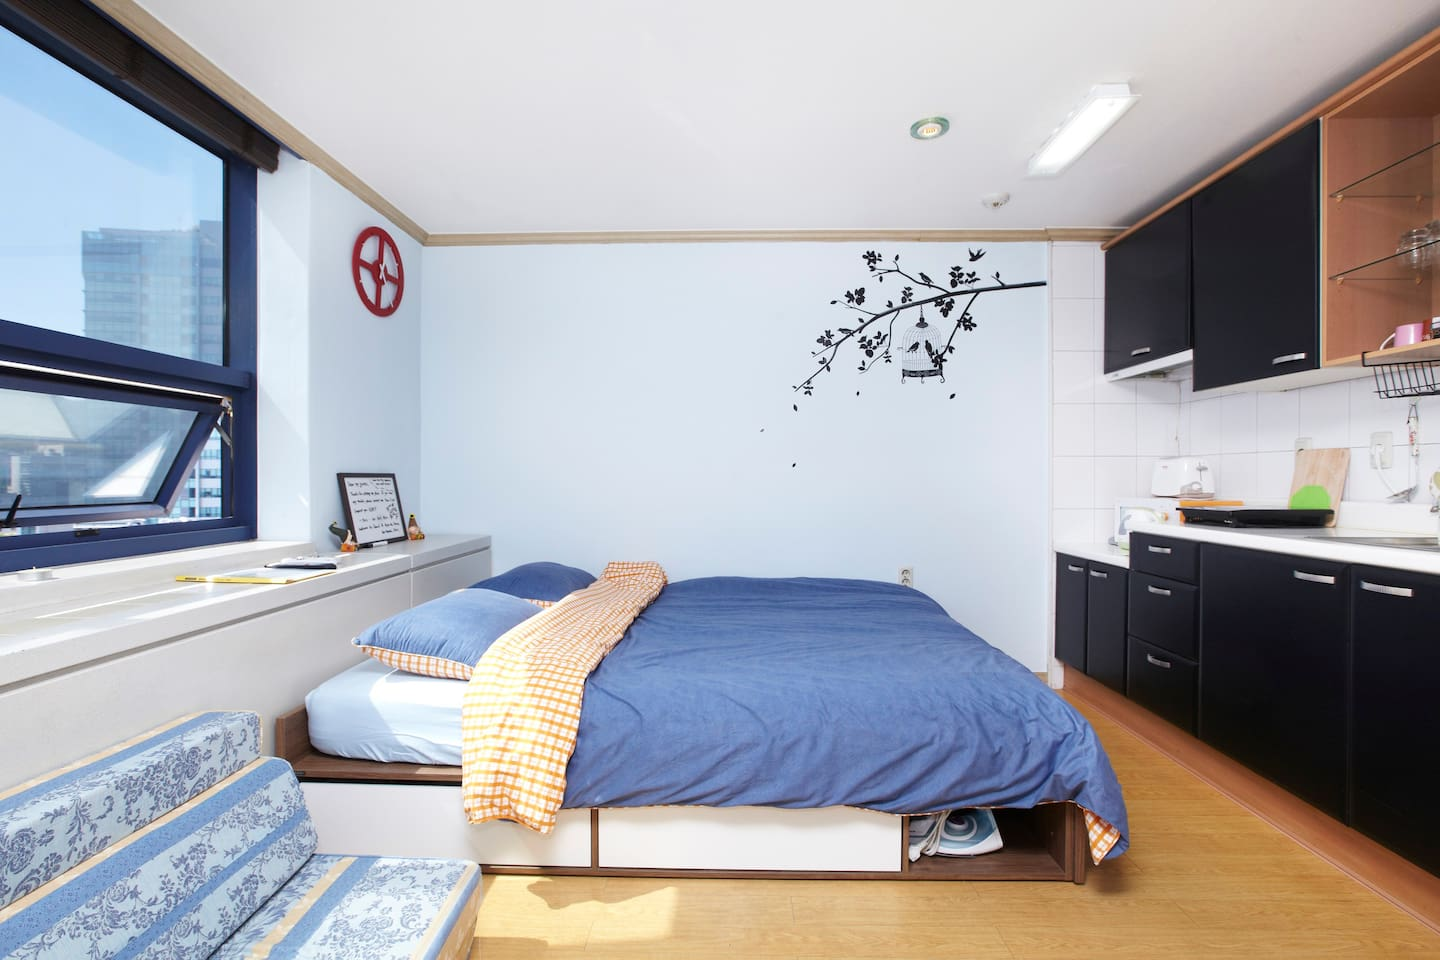 Shining room with everything equiped